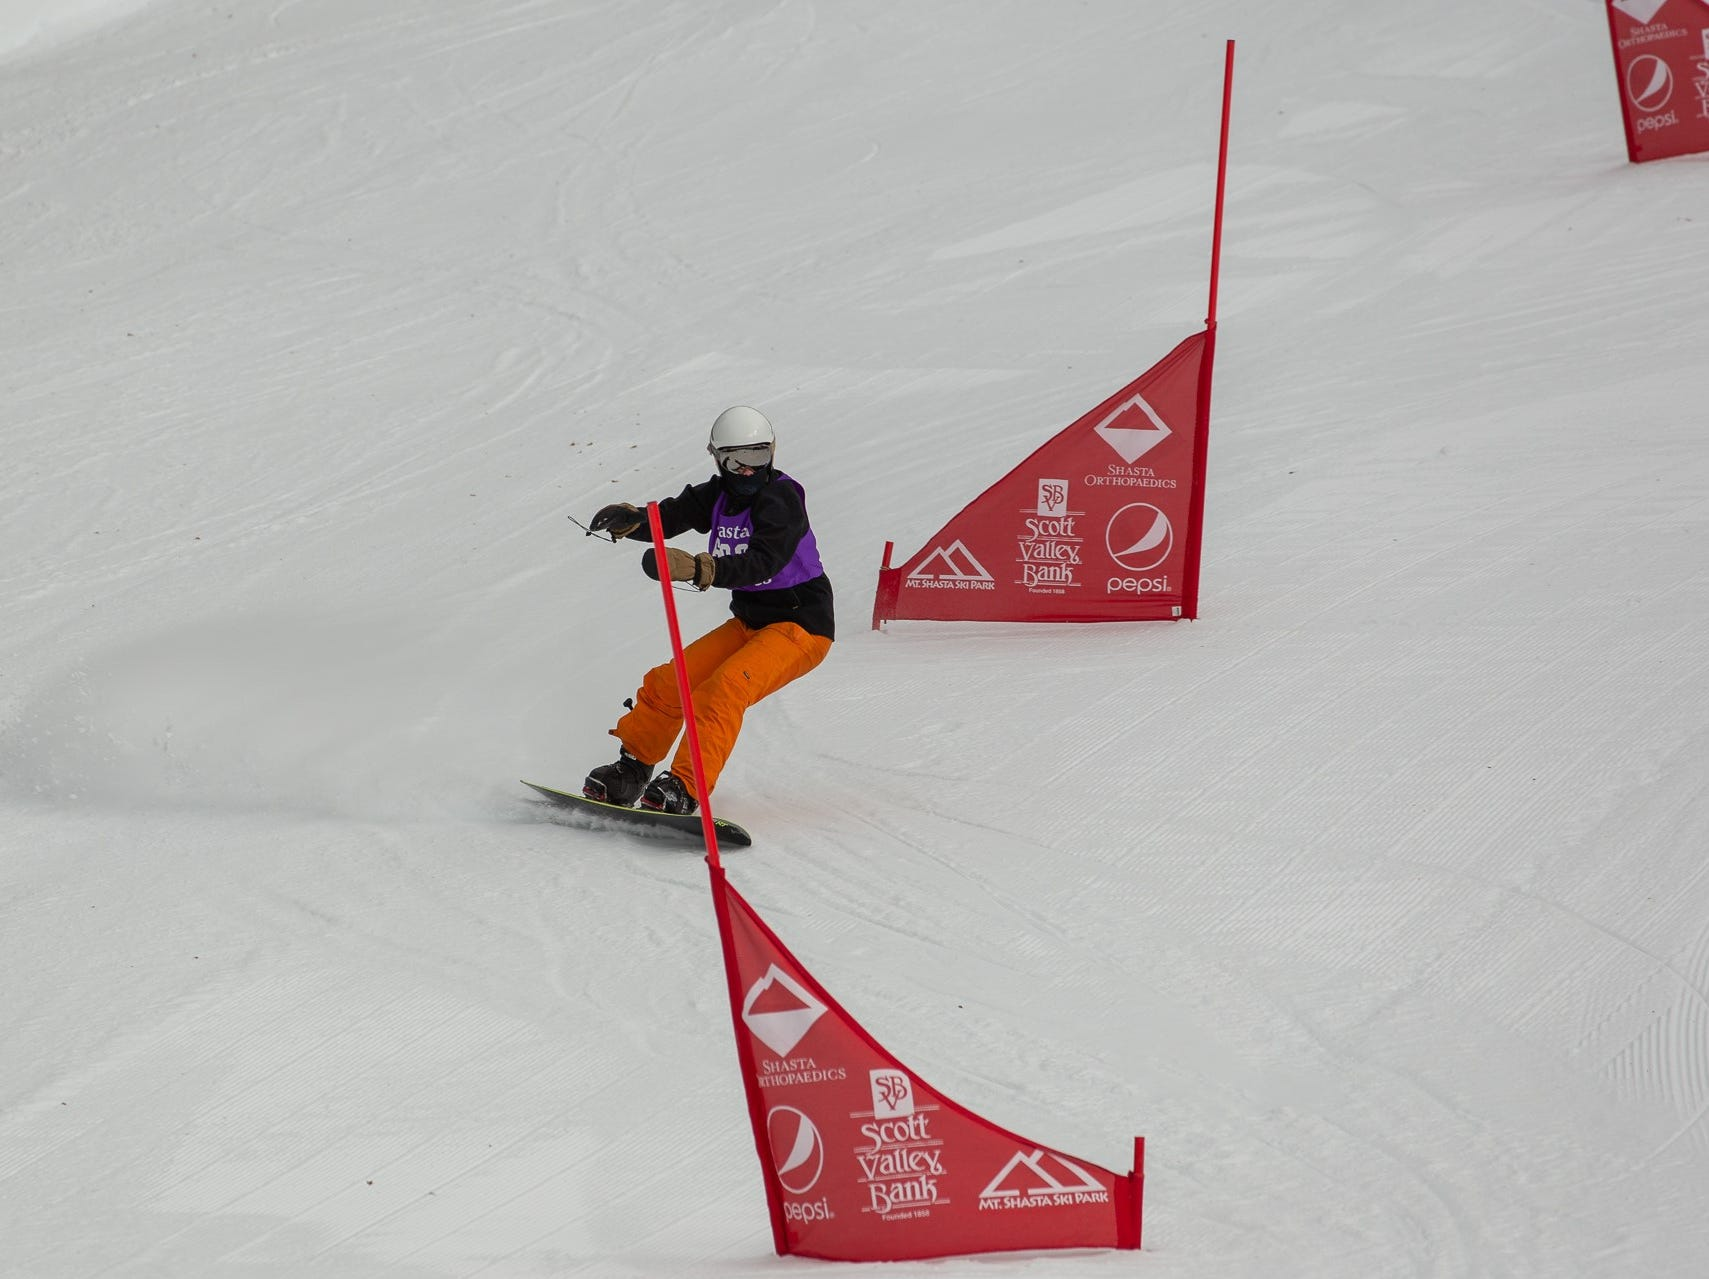 Gabe Viggers of Shasta competes in the first high school snowboard meet of 2019 on Monday, Jan. 14 at Mt. Shasta Ski Park.